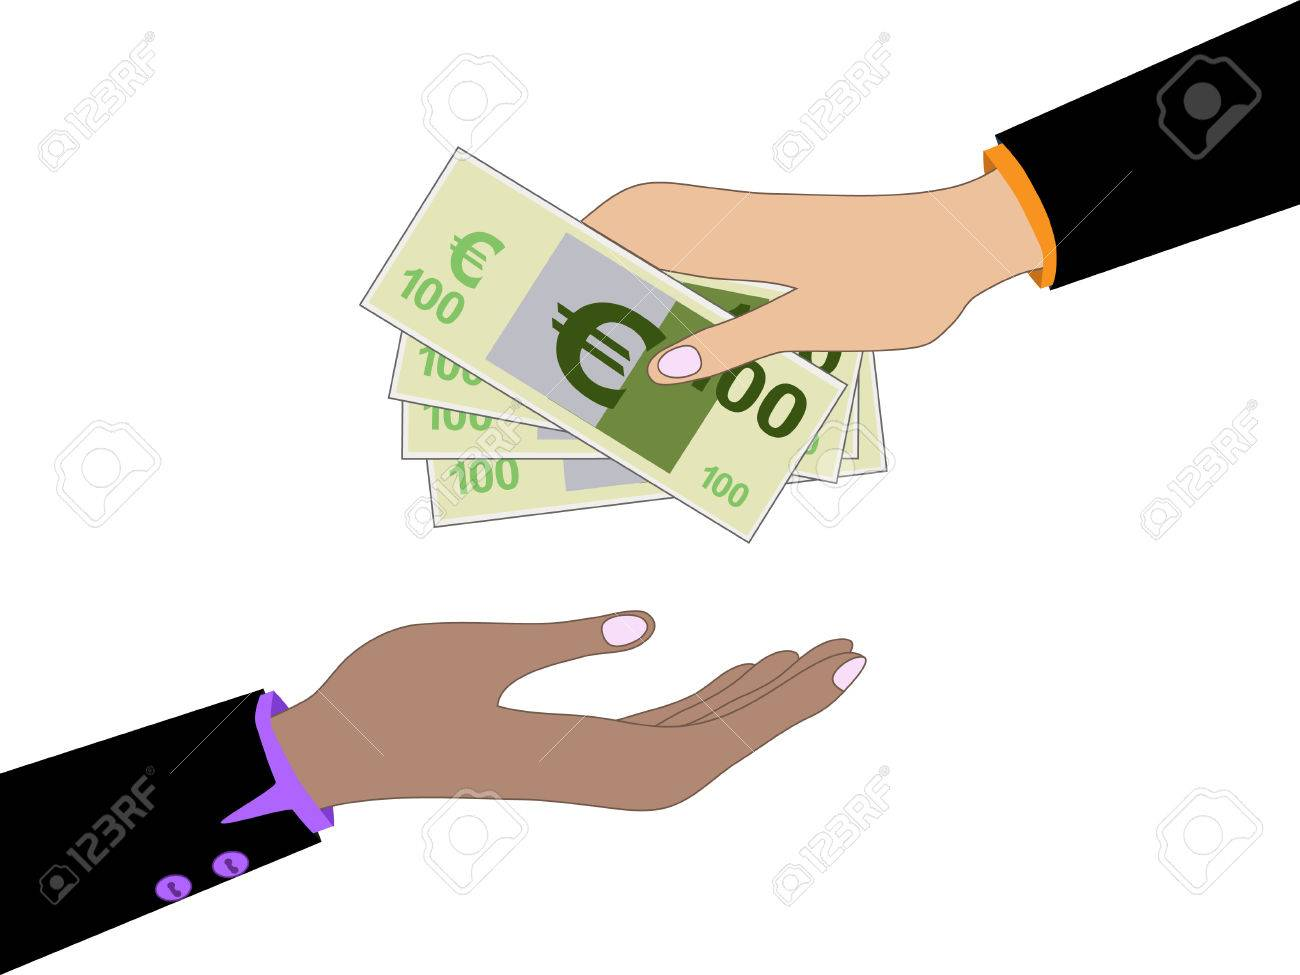 Vector Cartoon Of Hand Giving Money Euro To Other Hand Royalty Free